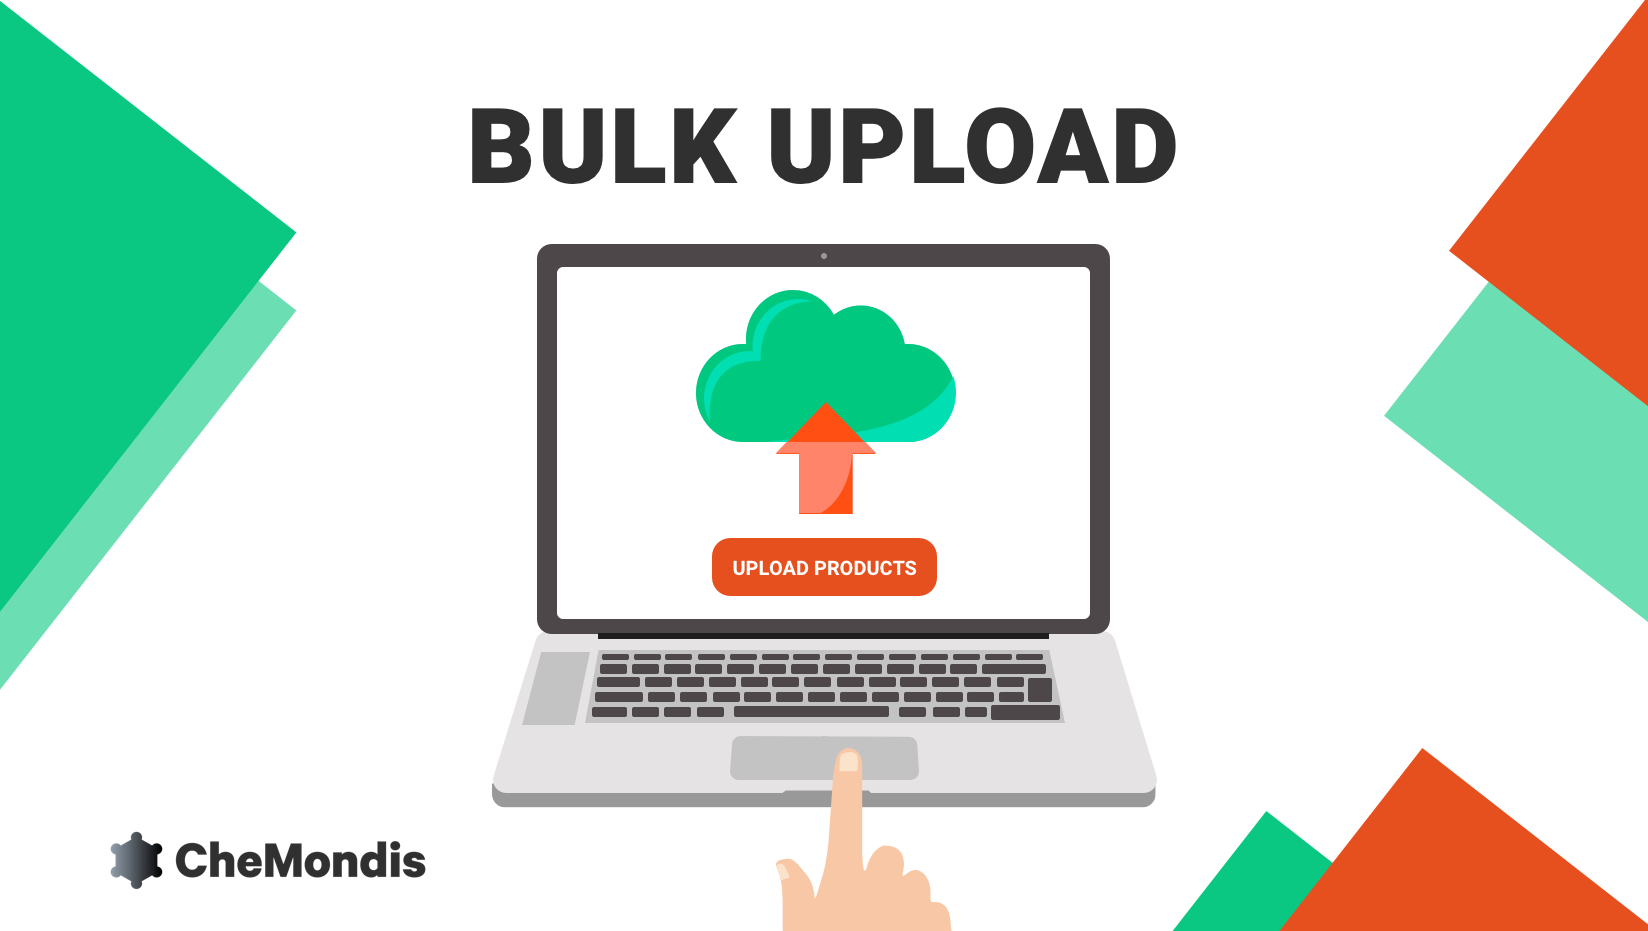 Bulk Upload on CheMondis explained